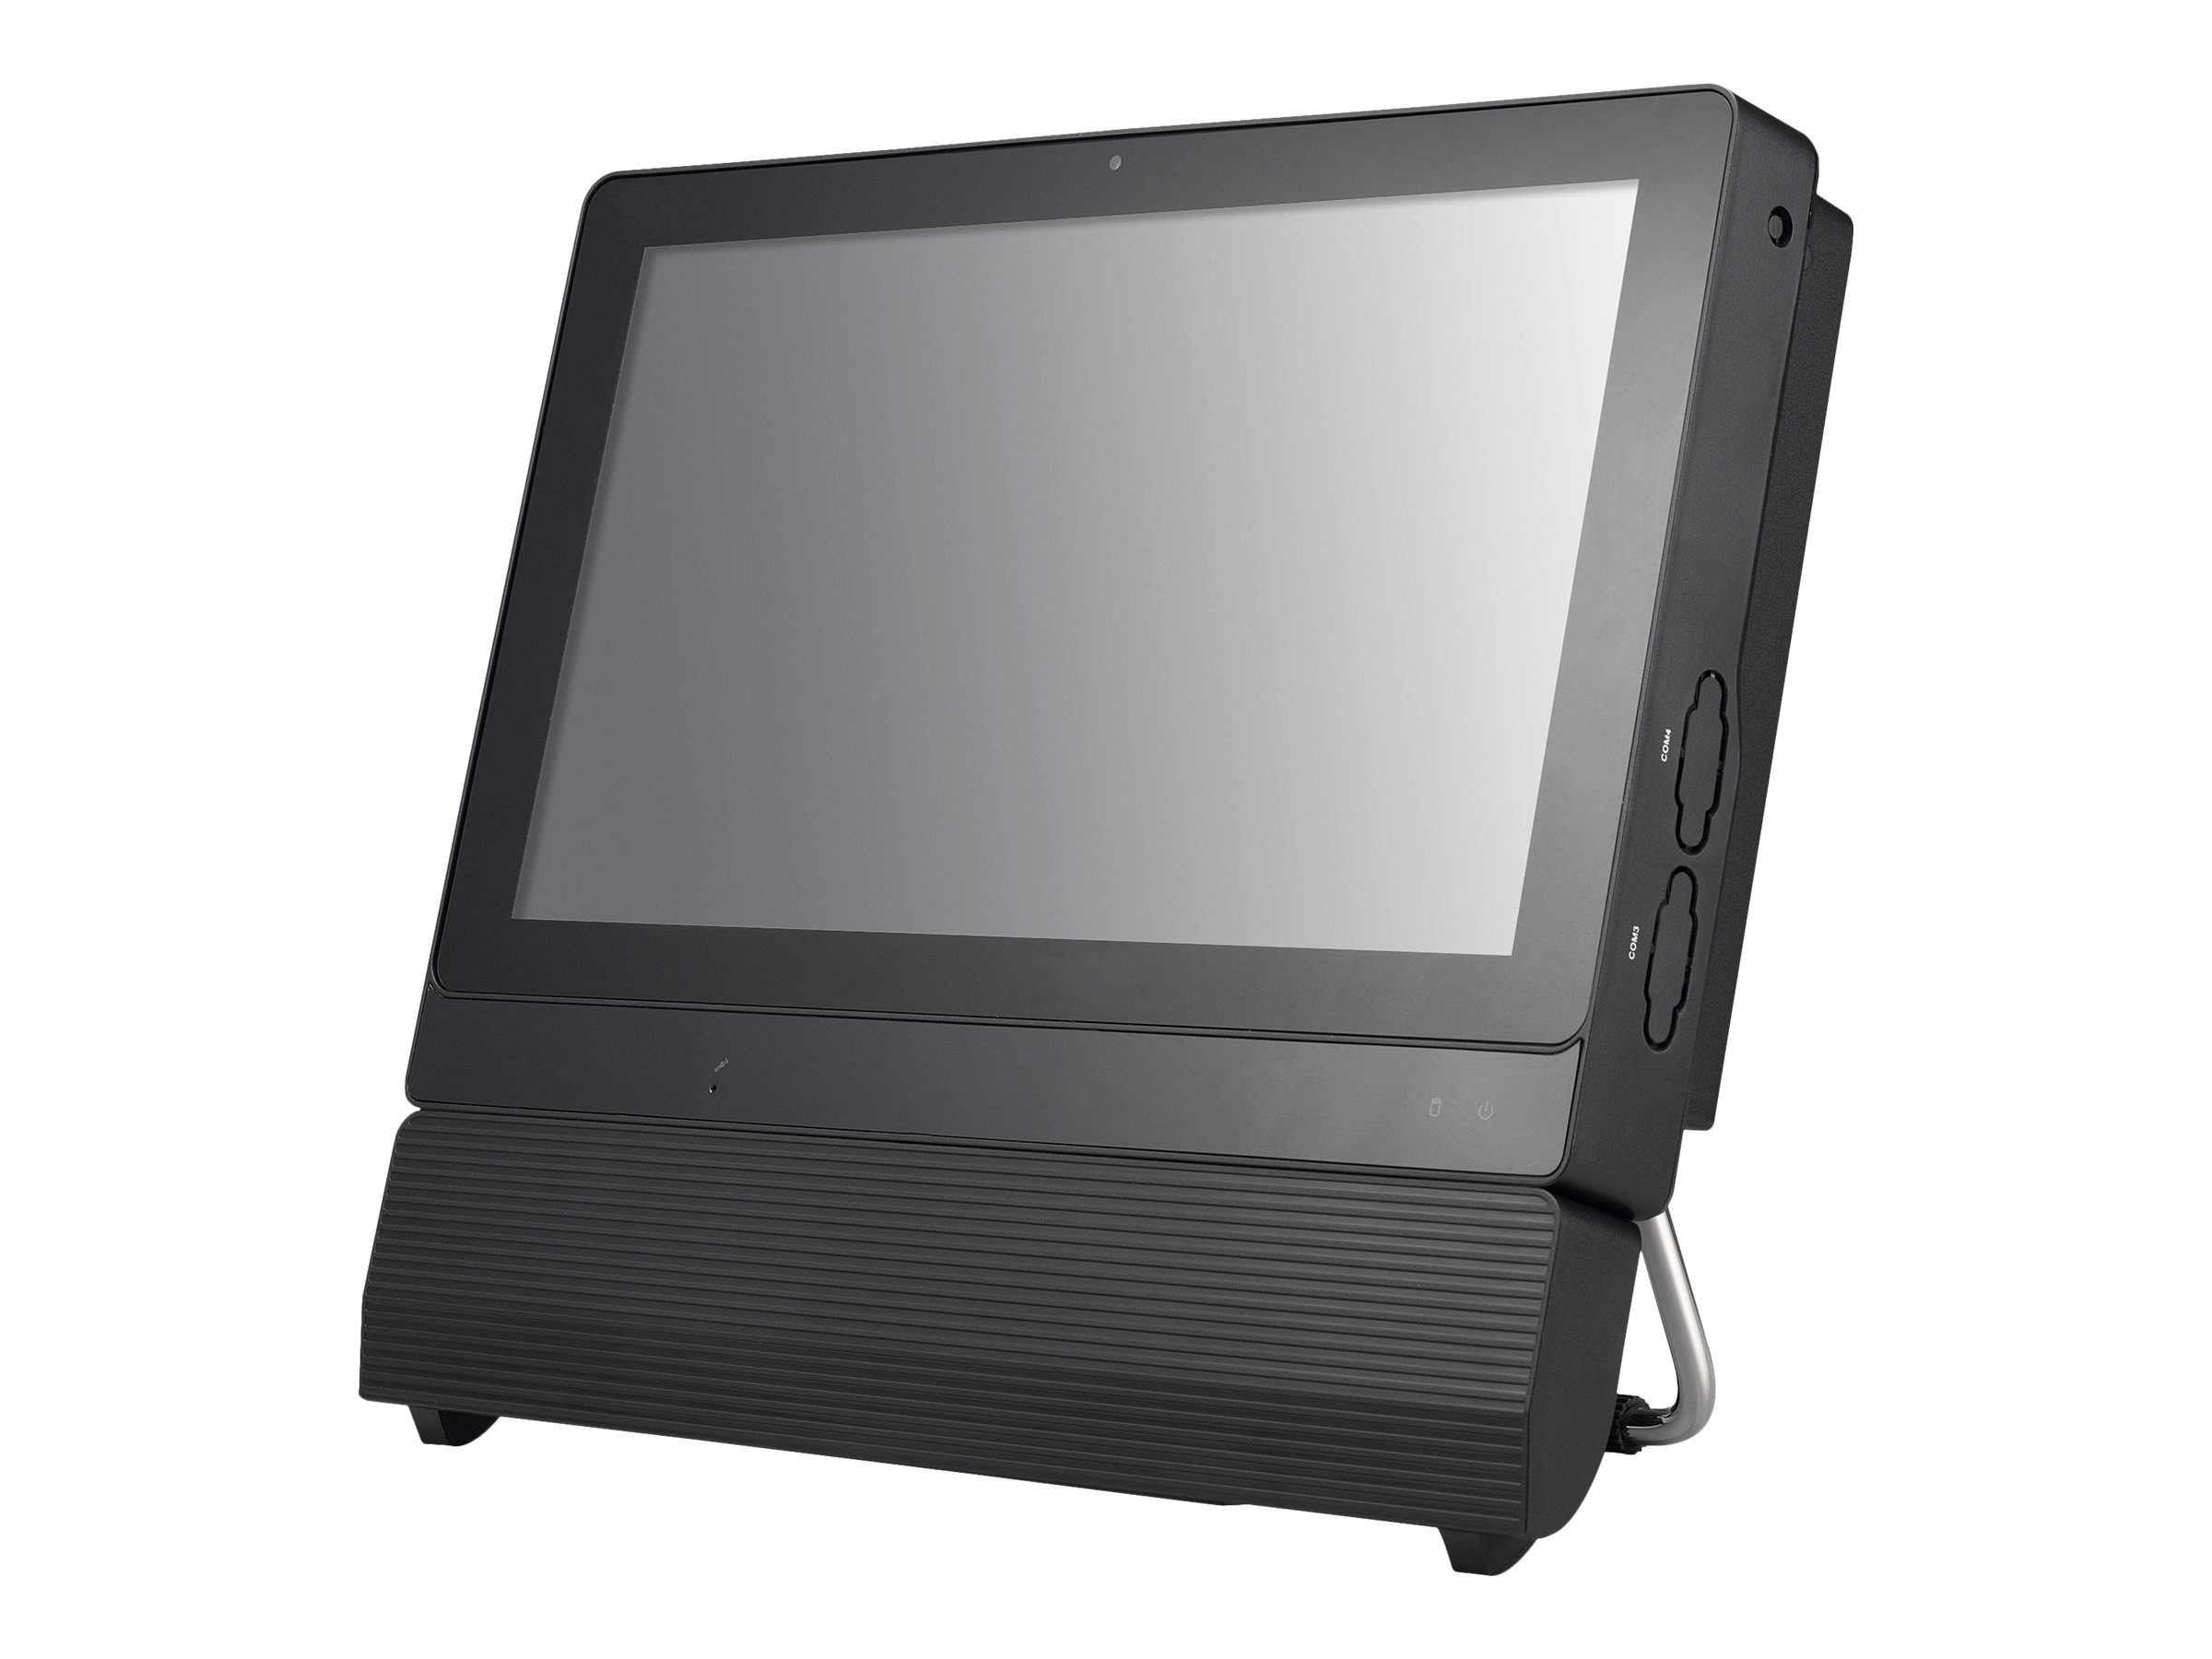 Shuttle XPC P2000PA - All-in-One (Komplettl?sung) - 1 x Celeron 3865U / 1.8 GHz ULV - RAM 4 GB - SSD 120 GB - HD Graphic